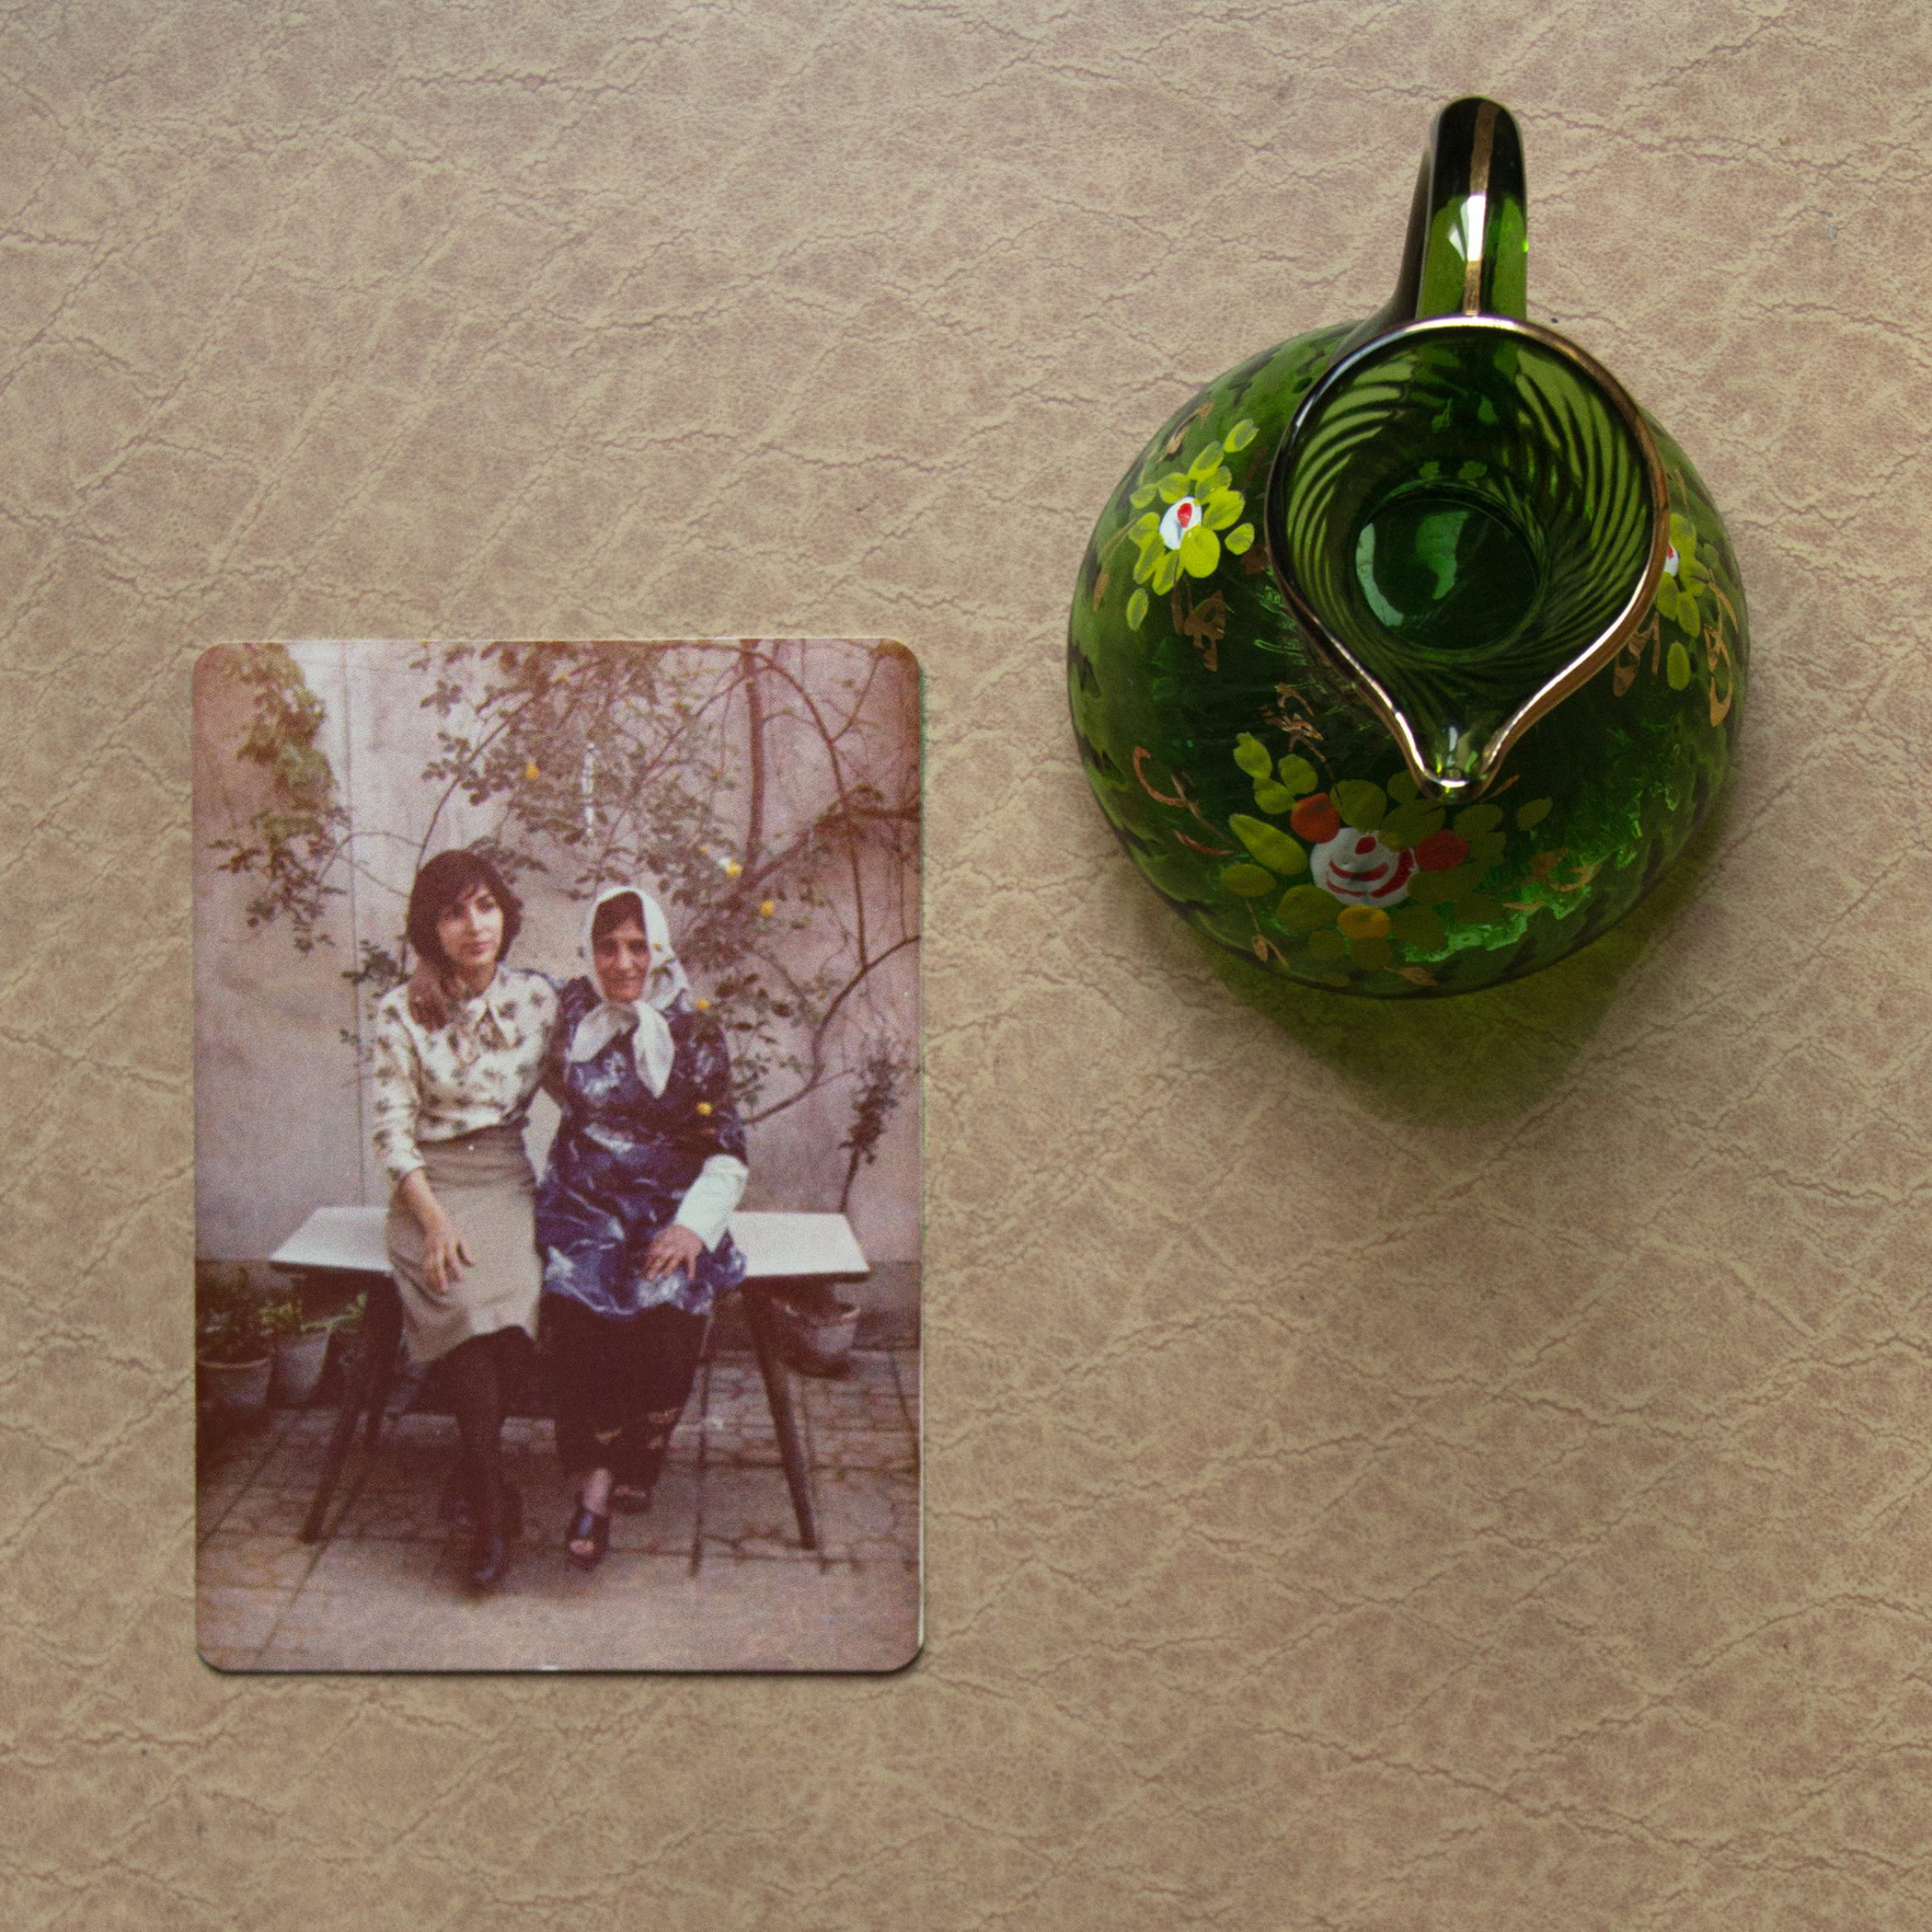 Photo of two woman on a table and a green glass teapot next to it.